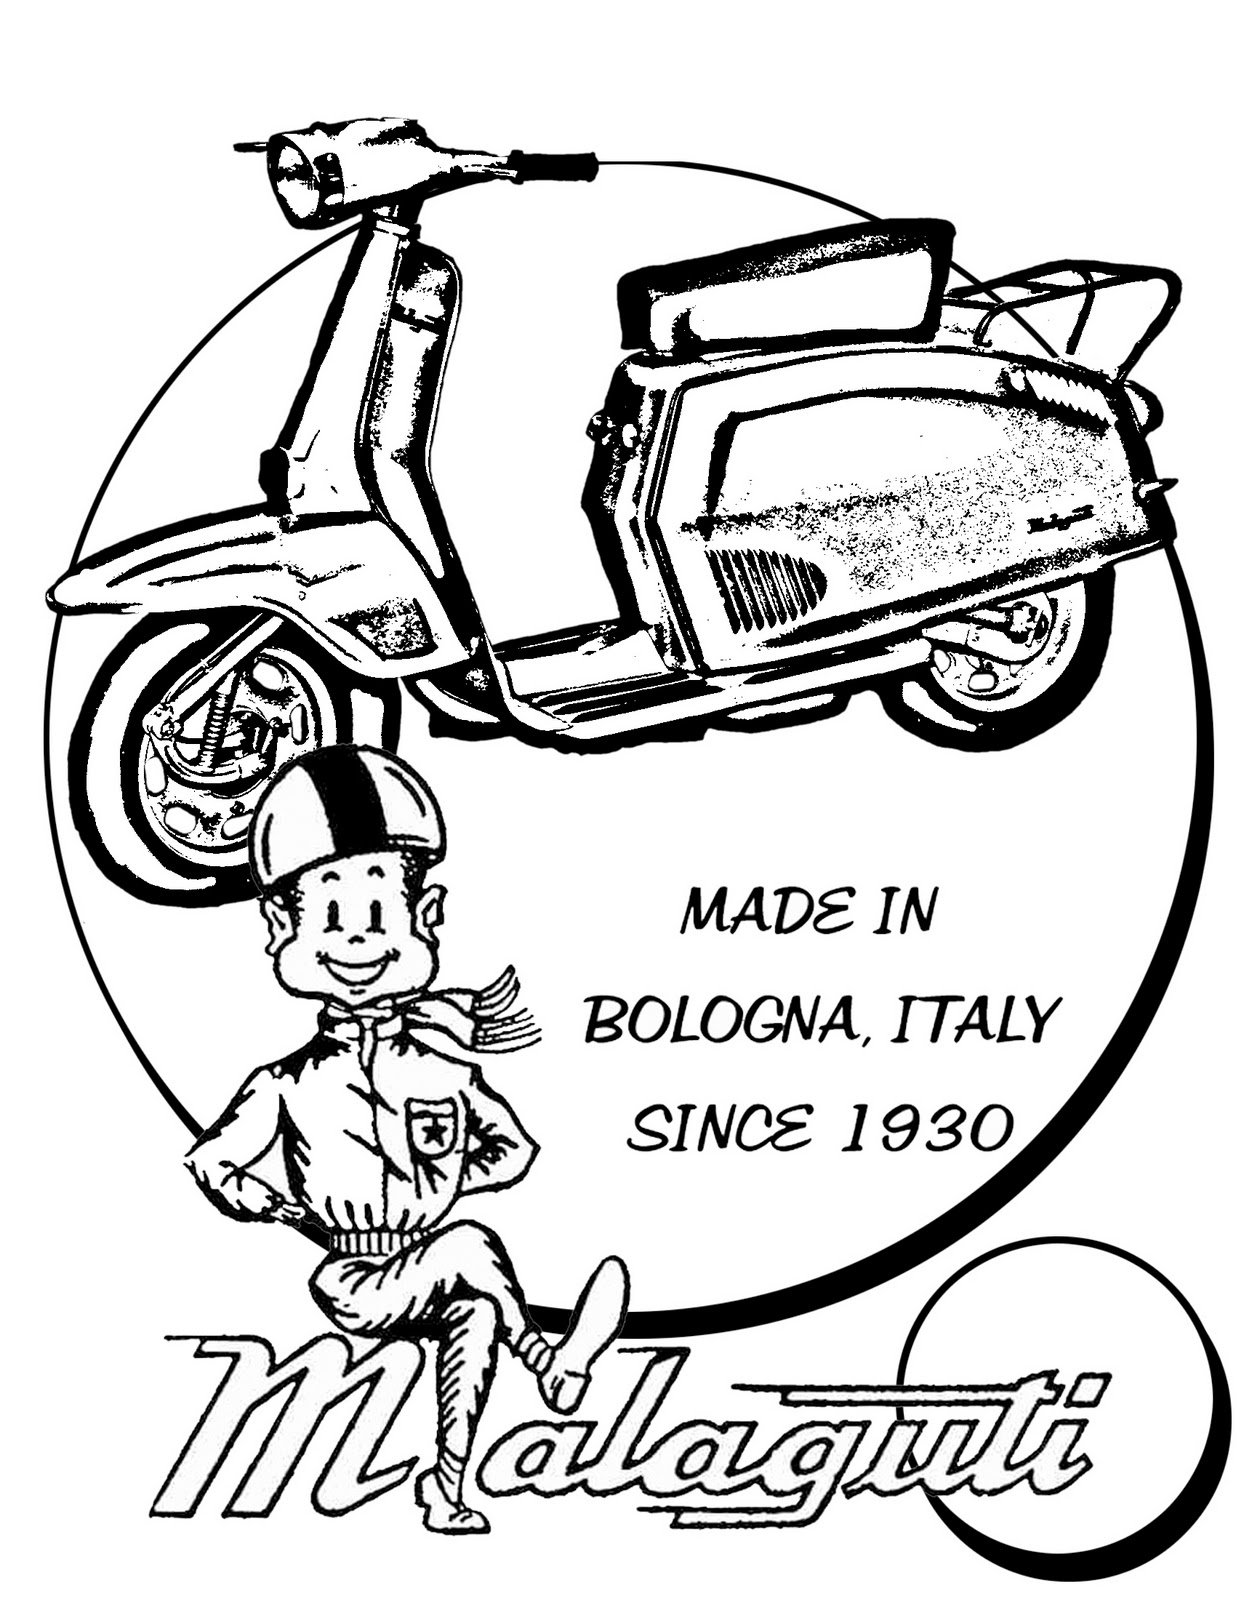 martin racing performance november 2011 Holley Carburetor Rebuild Kits looking back in the late 90s the top management at kymco kwang yang motor co in taiwan asked malaguti to represent the brand in italy and to invest in